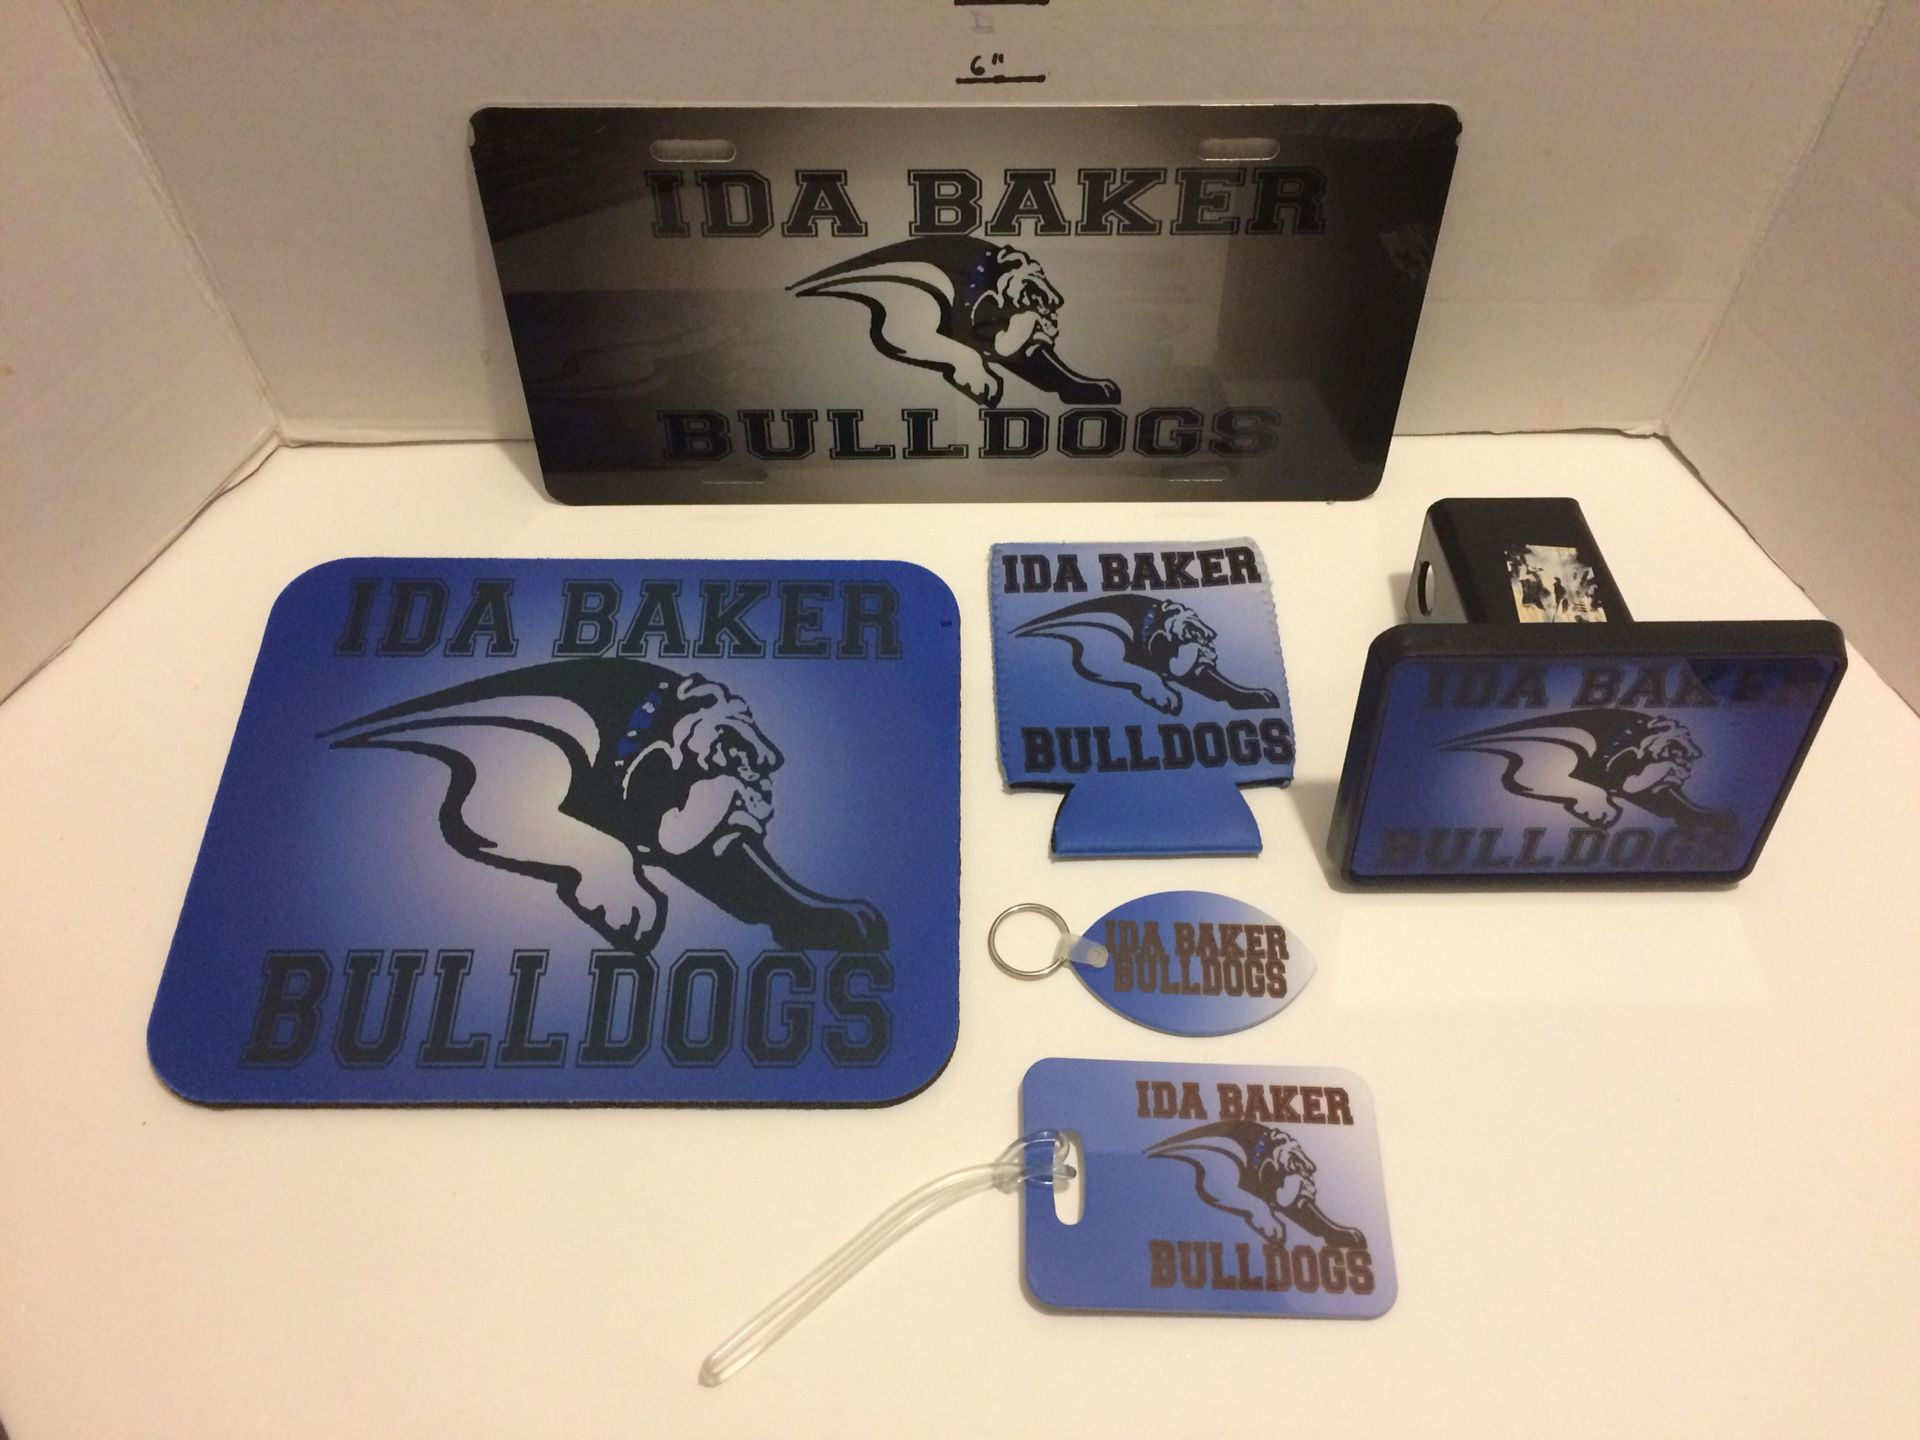 Ida baker HS bulldogs lot of 6 items keychain license plate mouse pad can koozie luggage tag